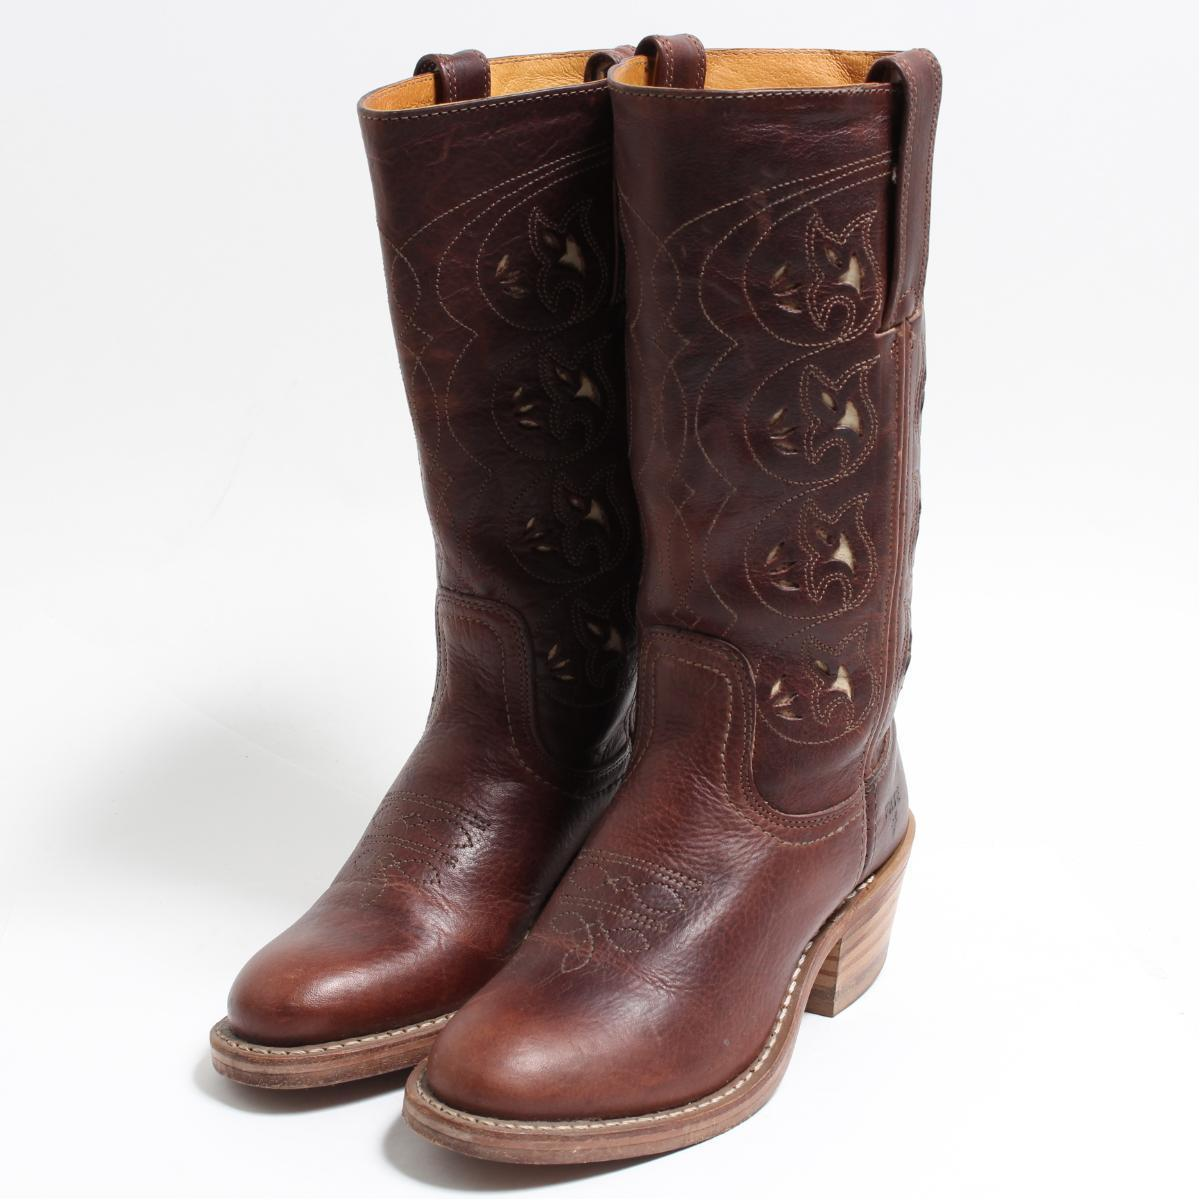 e3531538ec1 5.5M Lady's 22.5cm /boo3588 made in fried food FRYE western boots USA